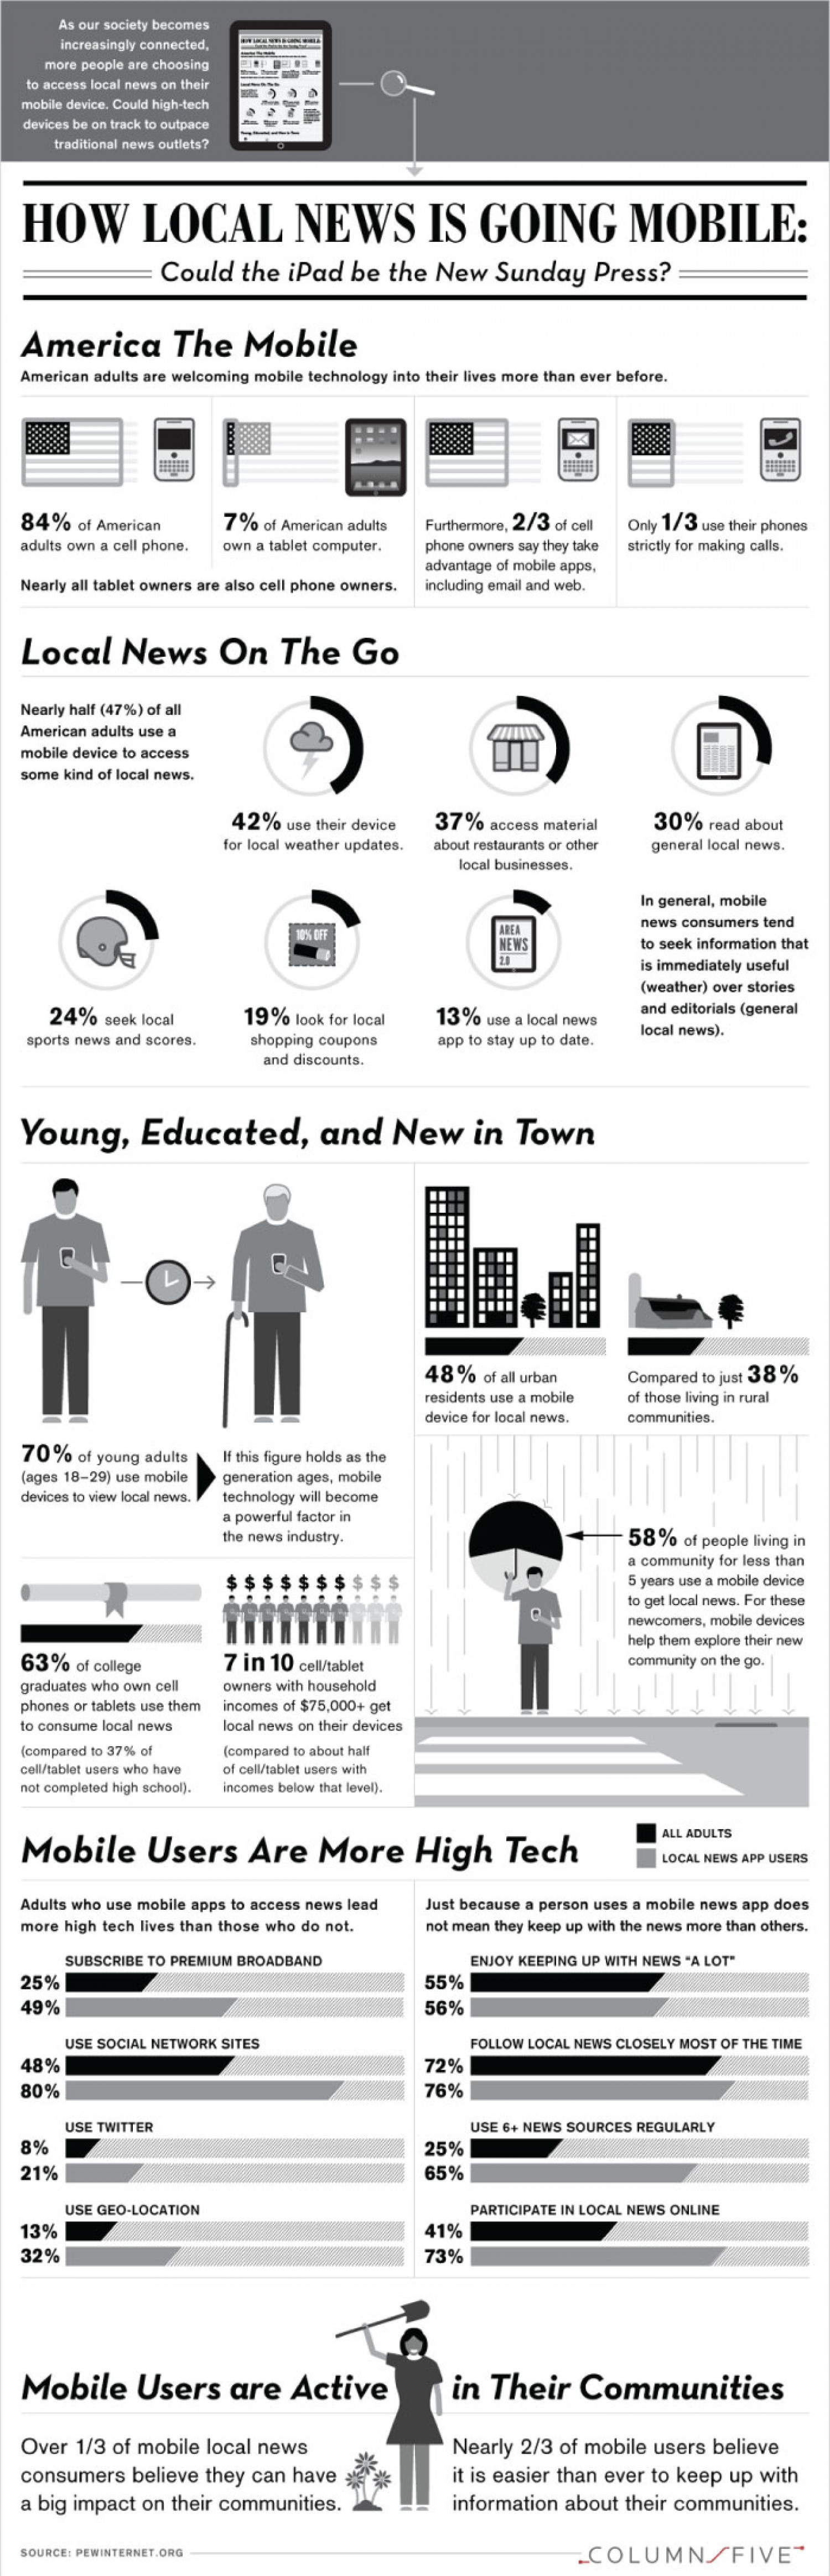 Local News Goes Mobile Infographic